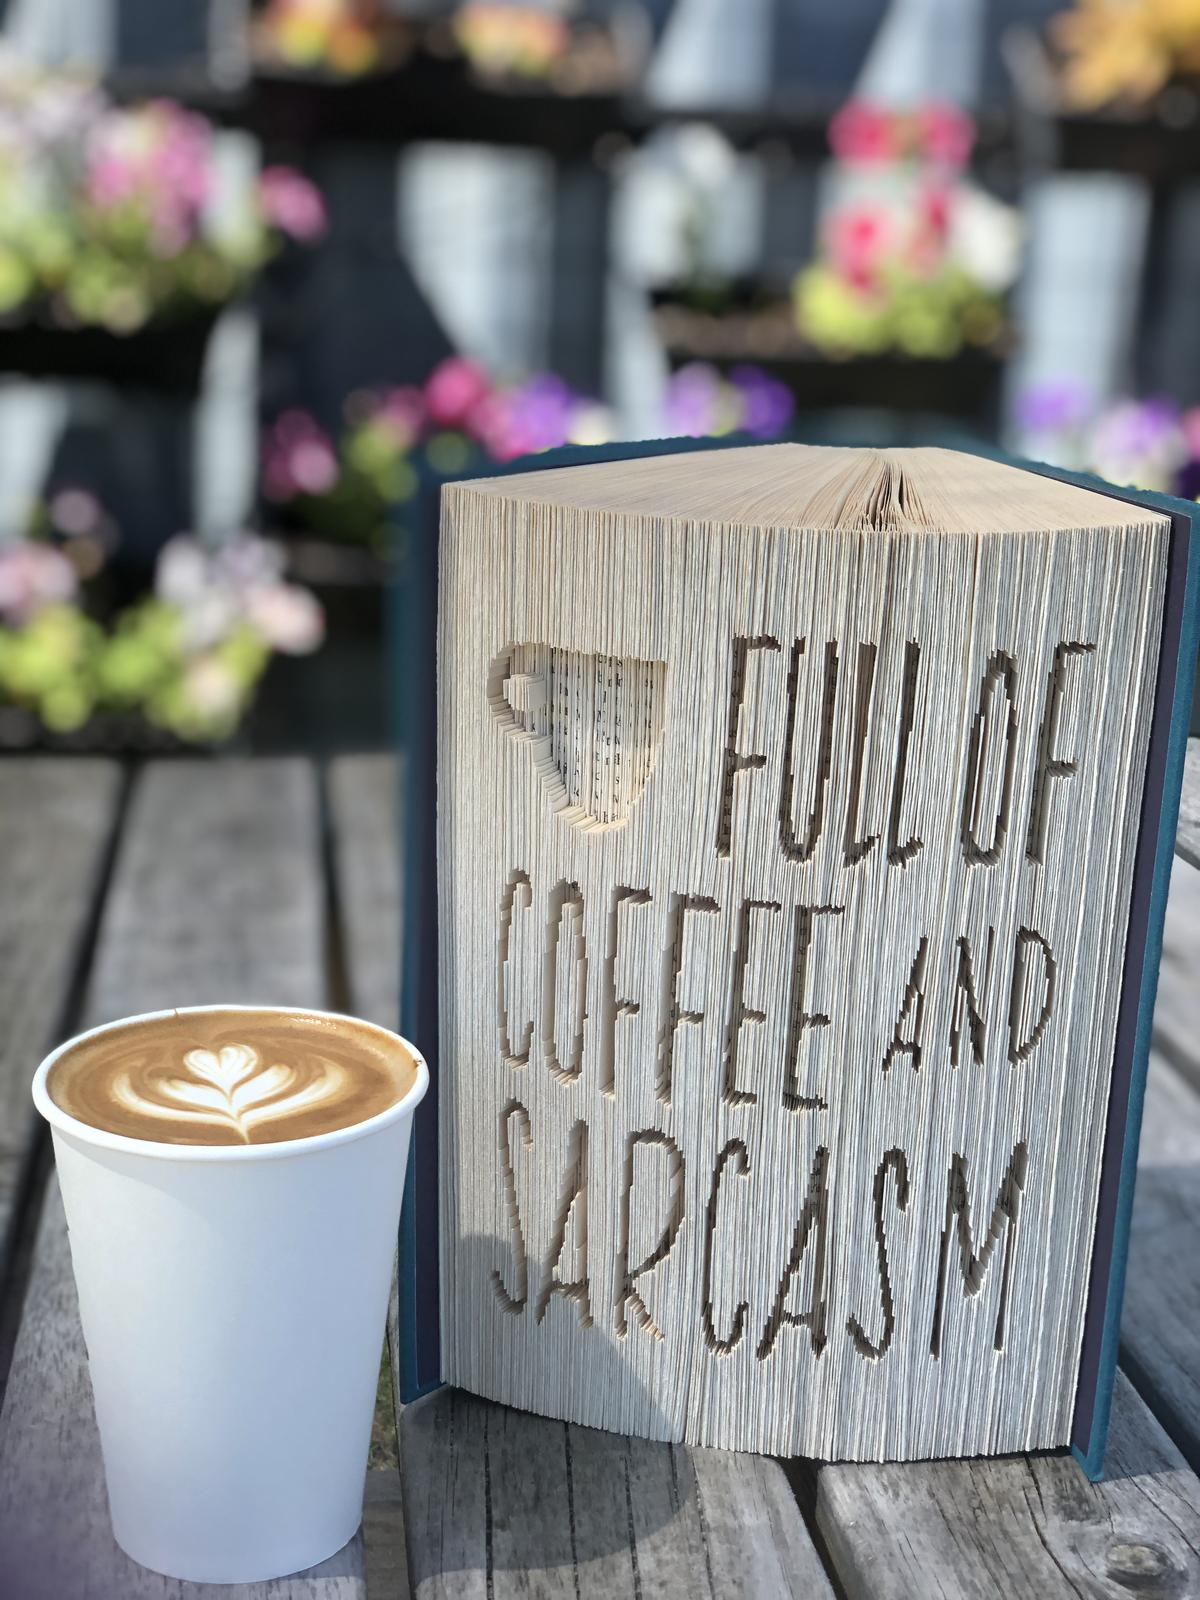 Bookami Coffee and Sarcasm